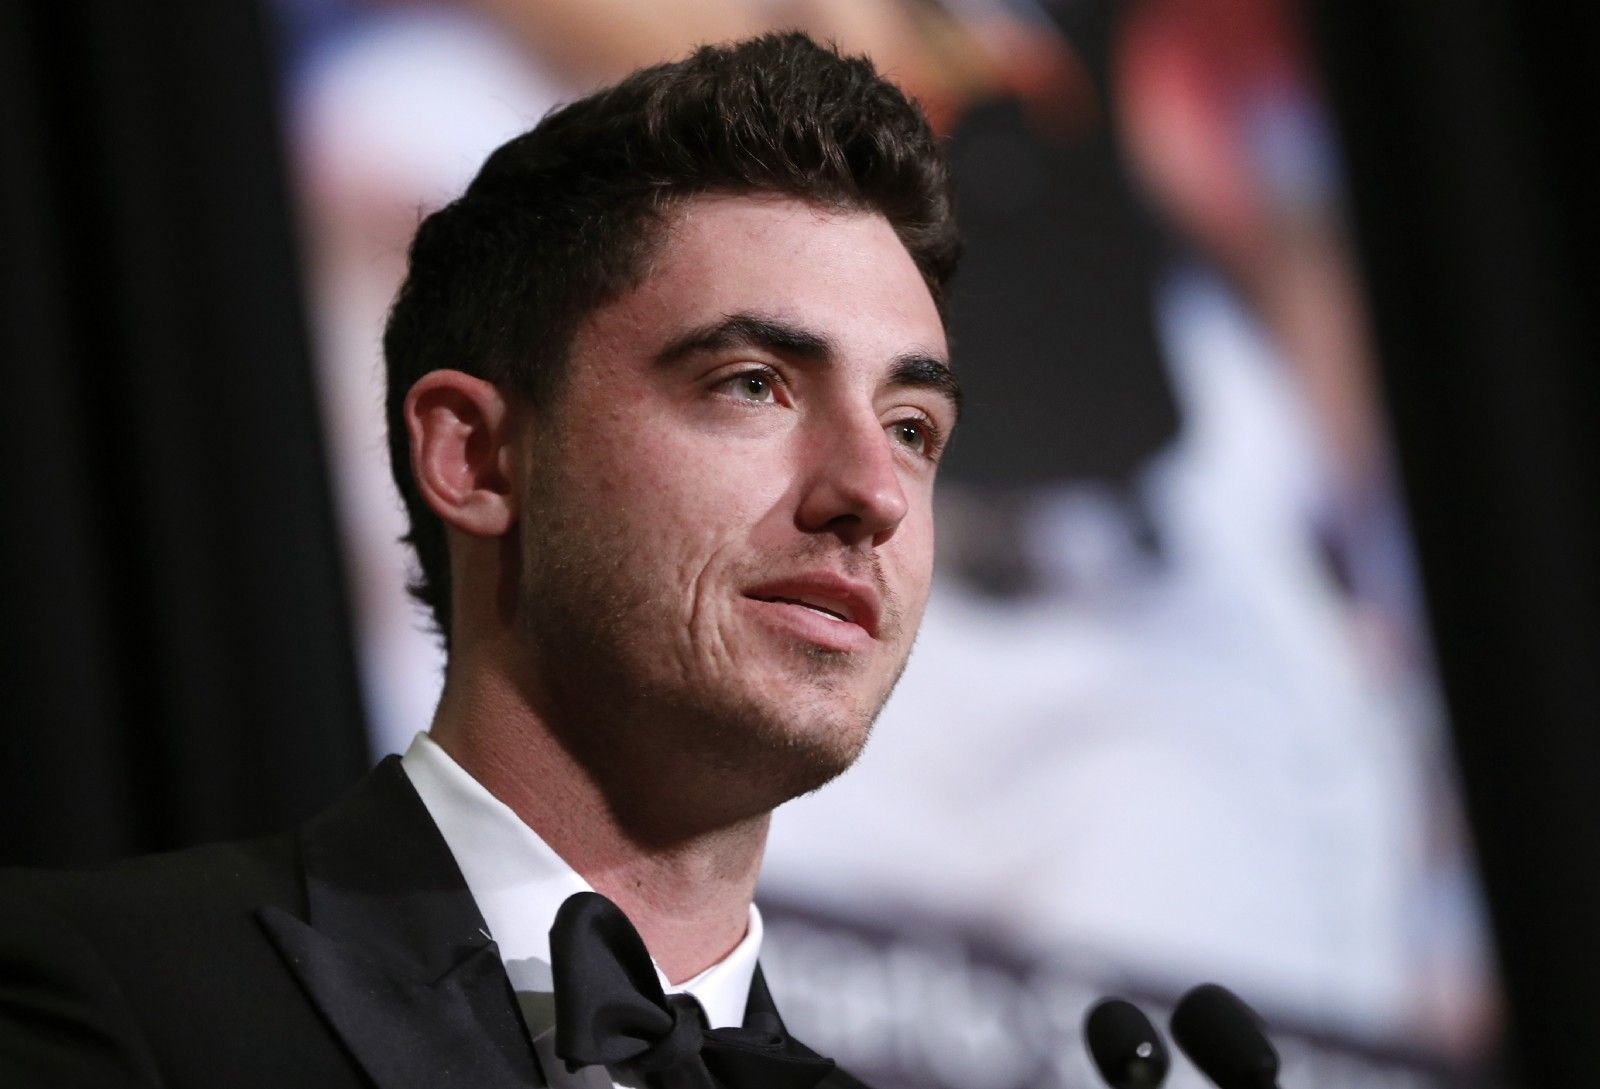 Watch: @Cody_Bellinger received his #RookieOfTheYear Award from his dad at Sunday's BBWAA Awards Dinner in New York